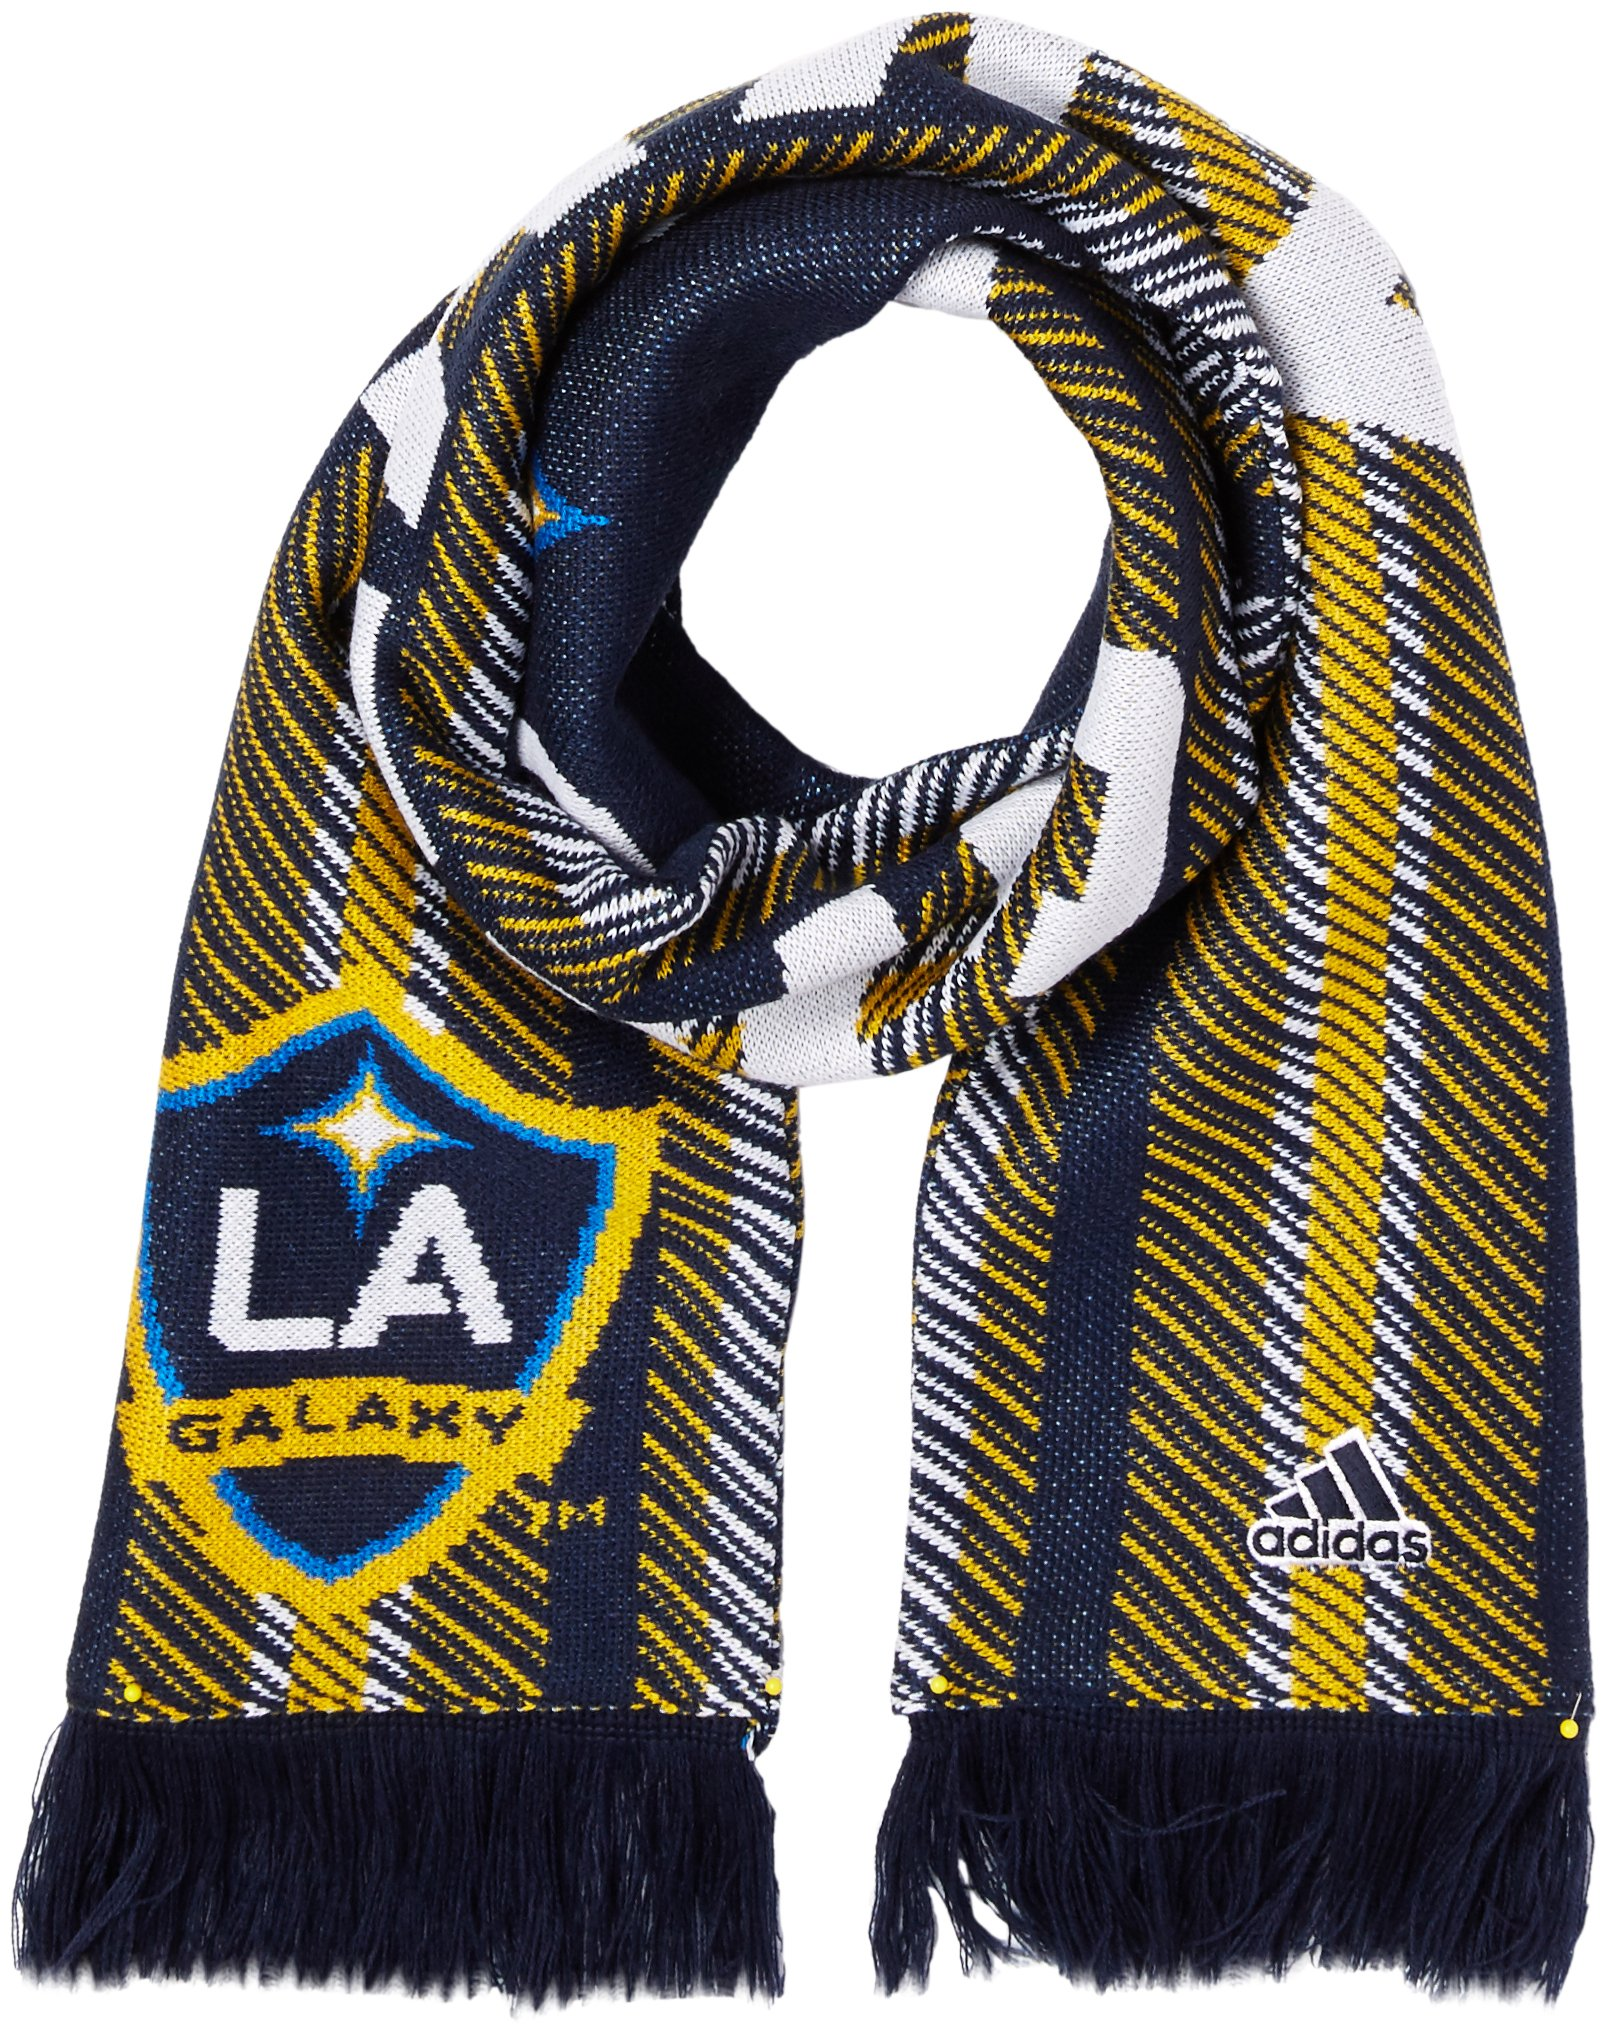 adidas MLS Los Angeles Galaxy Jacquard Scarf with Block Name, One Size, Navy